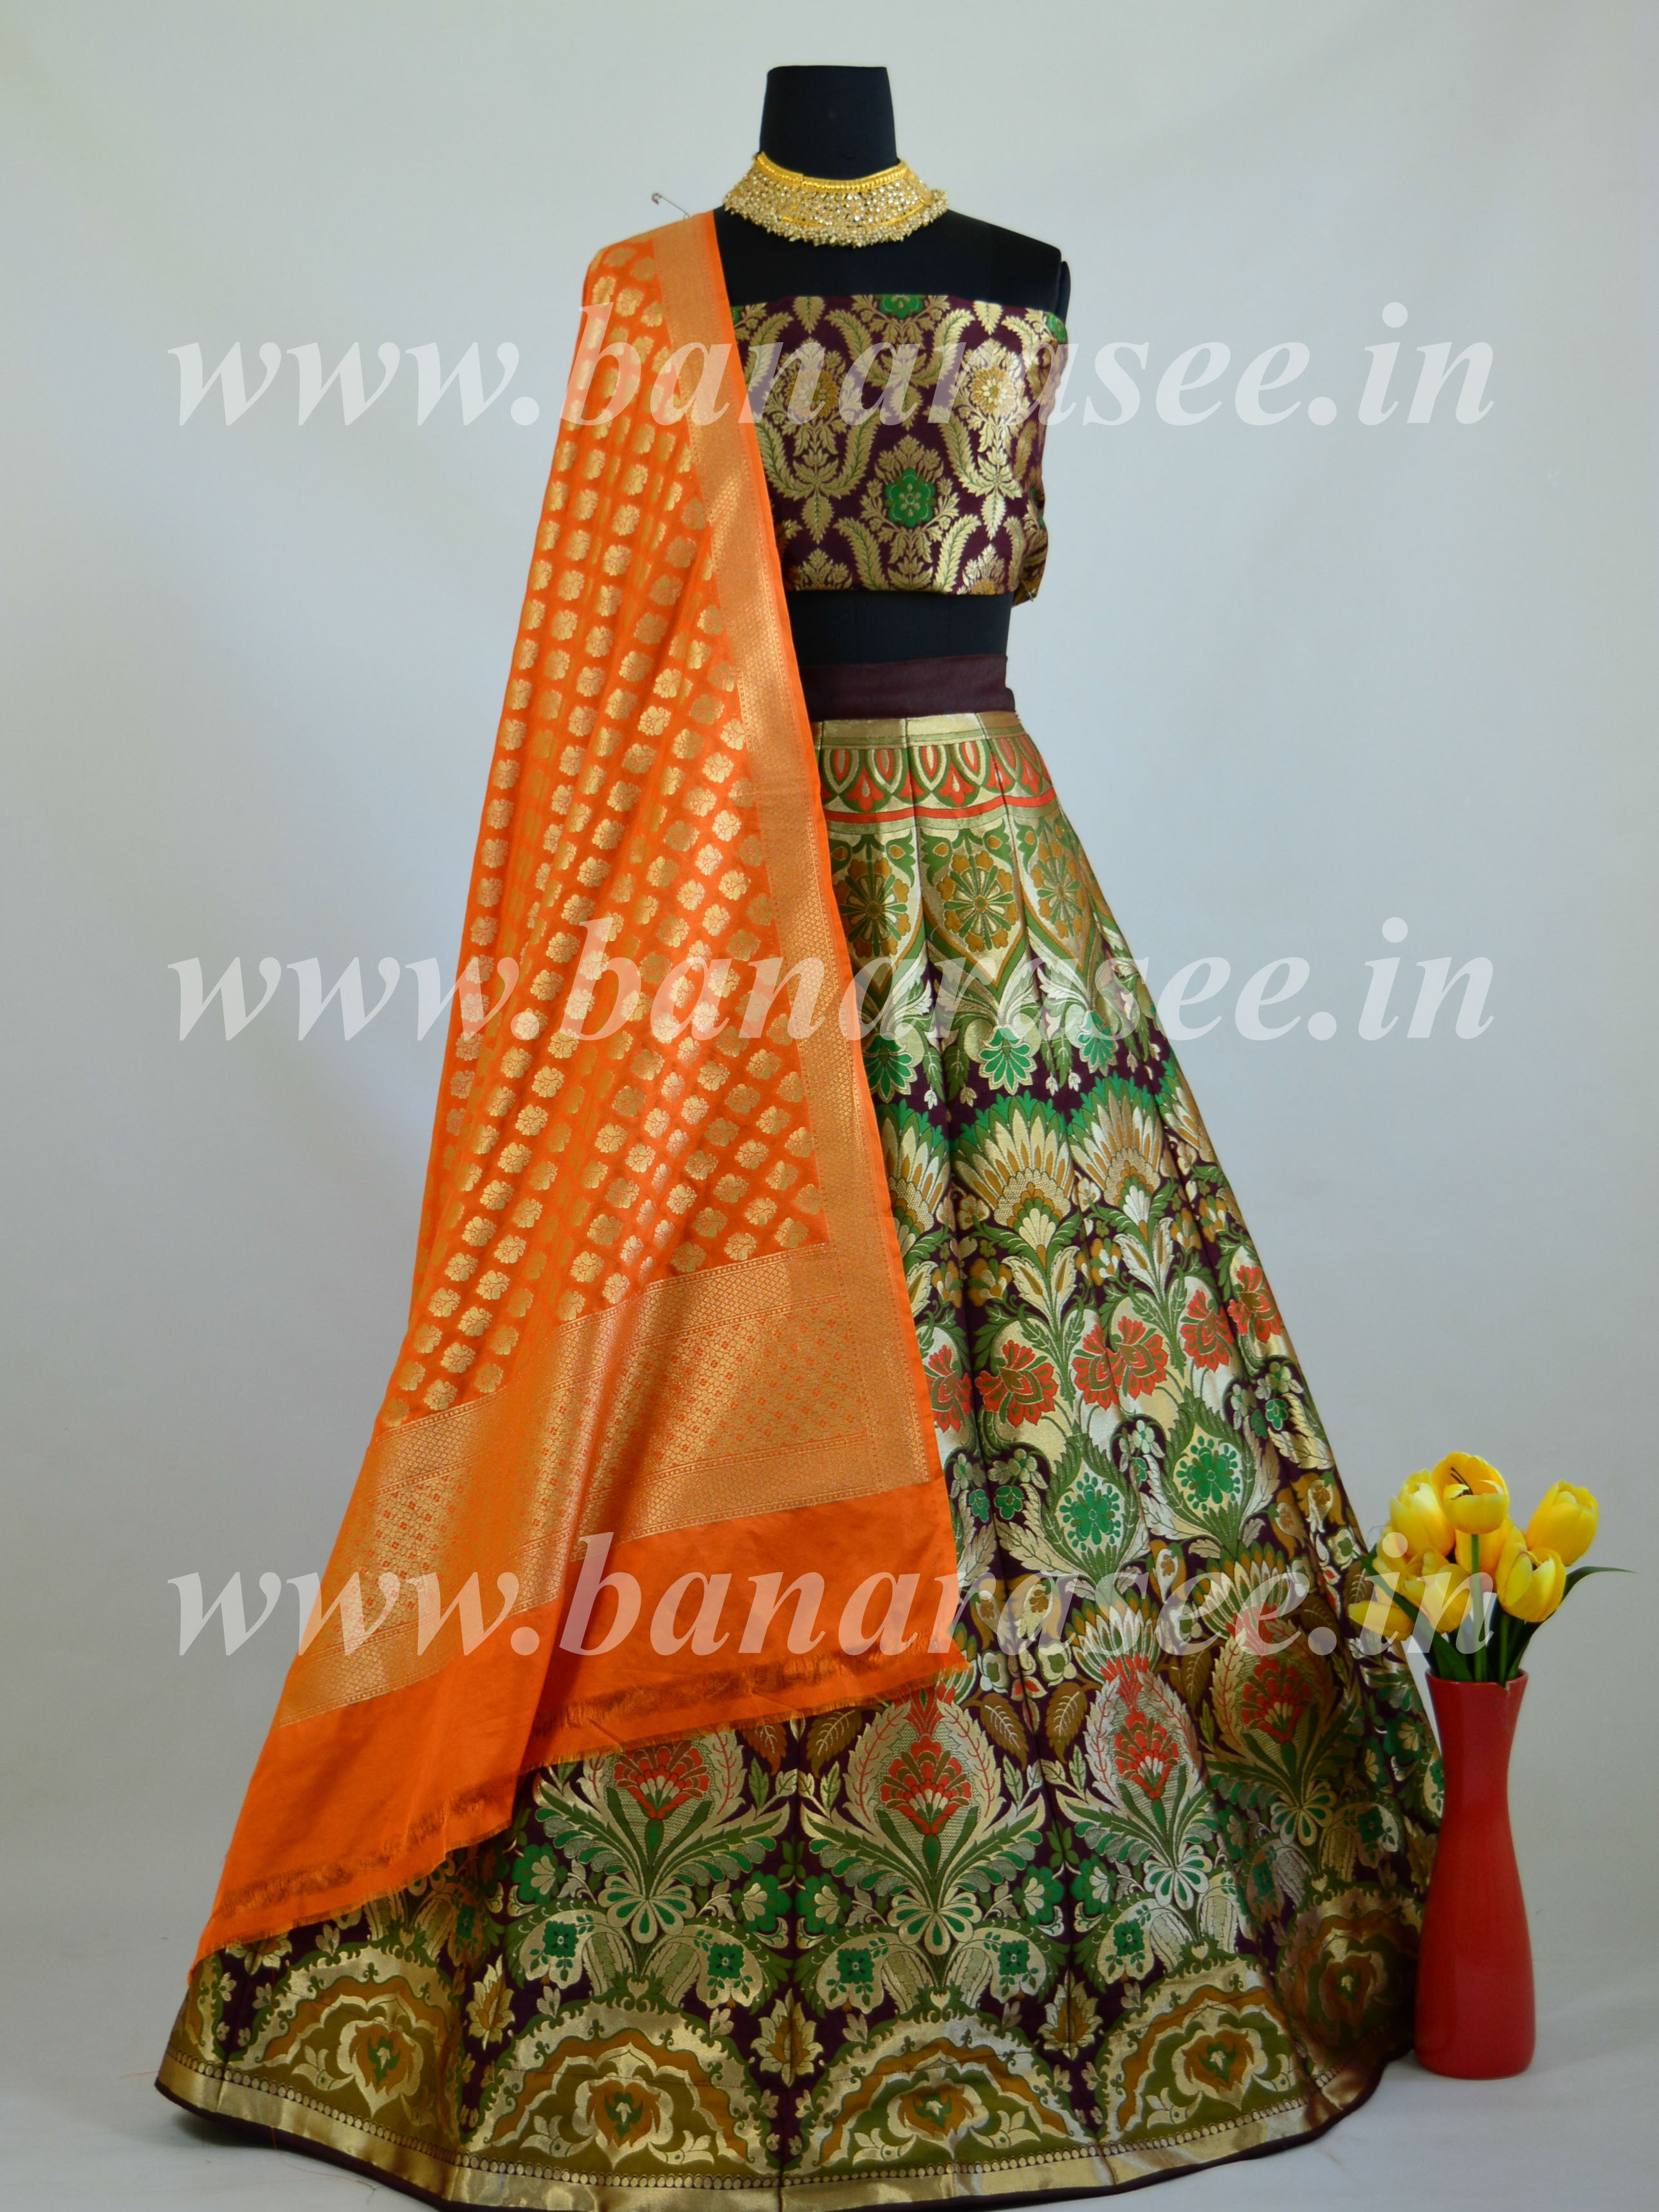 Banarasee Handwoven Art Silk Unstitched Lehenga & Blouse Fabric With Meena Work-Brown